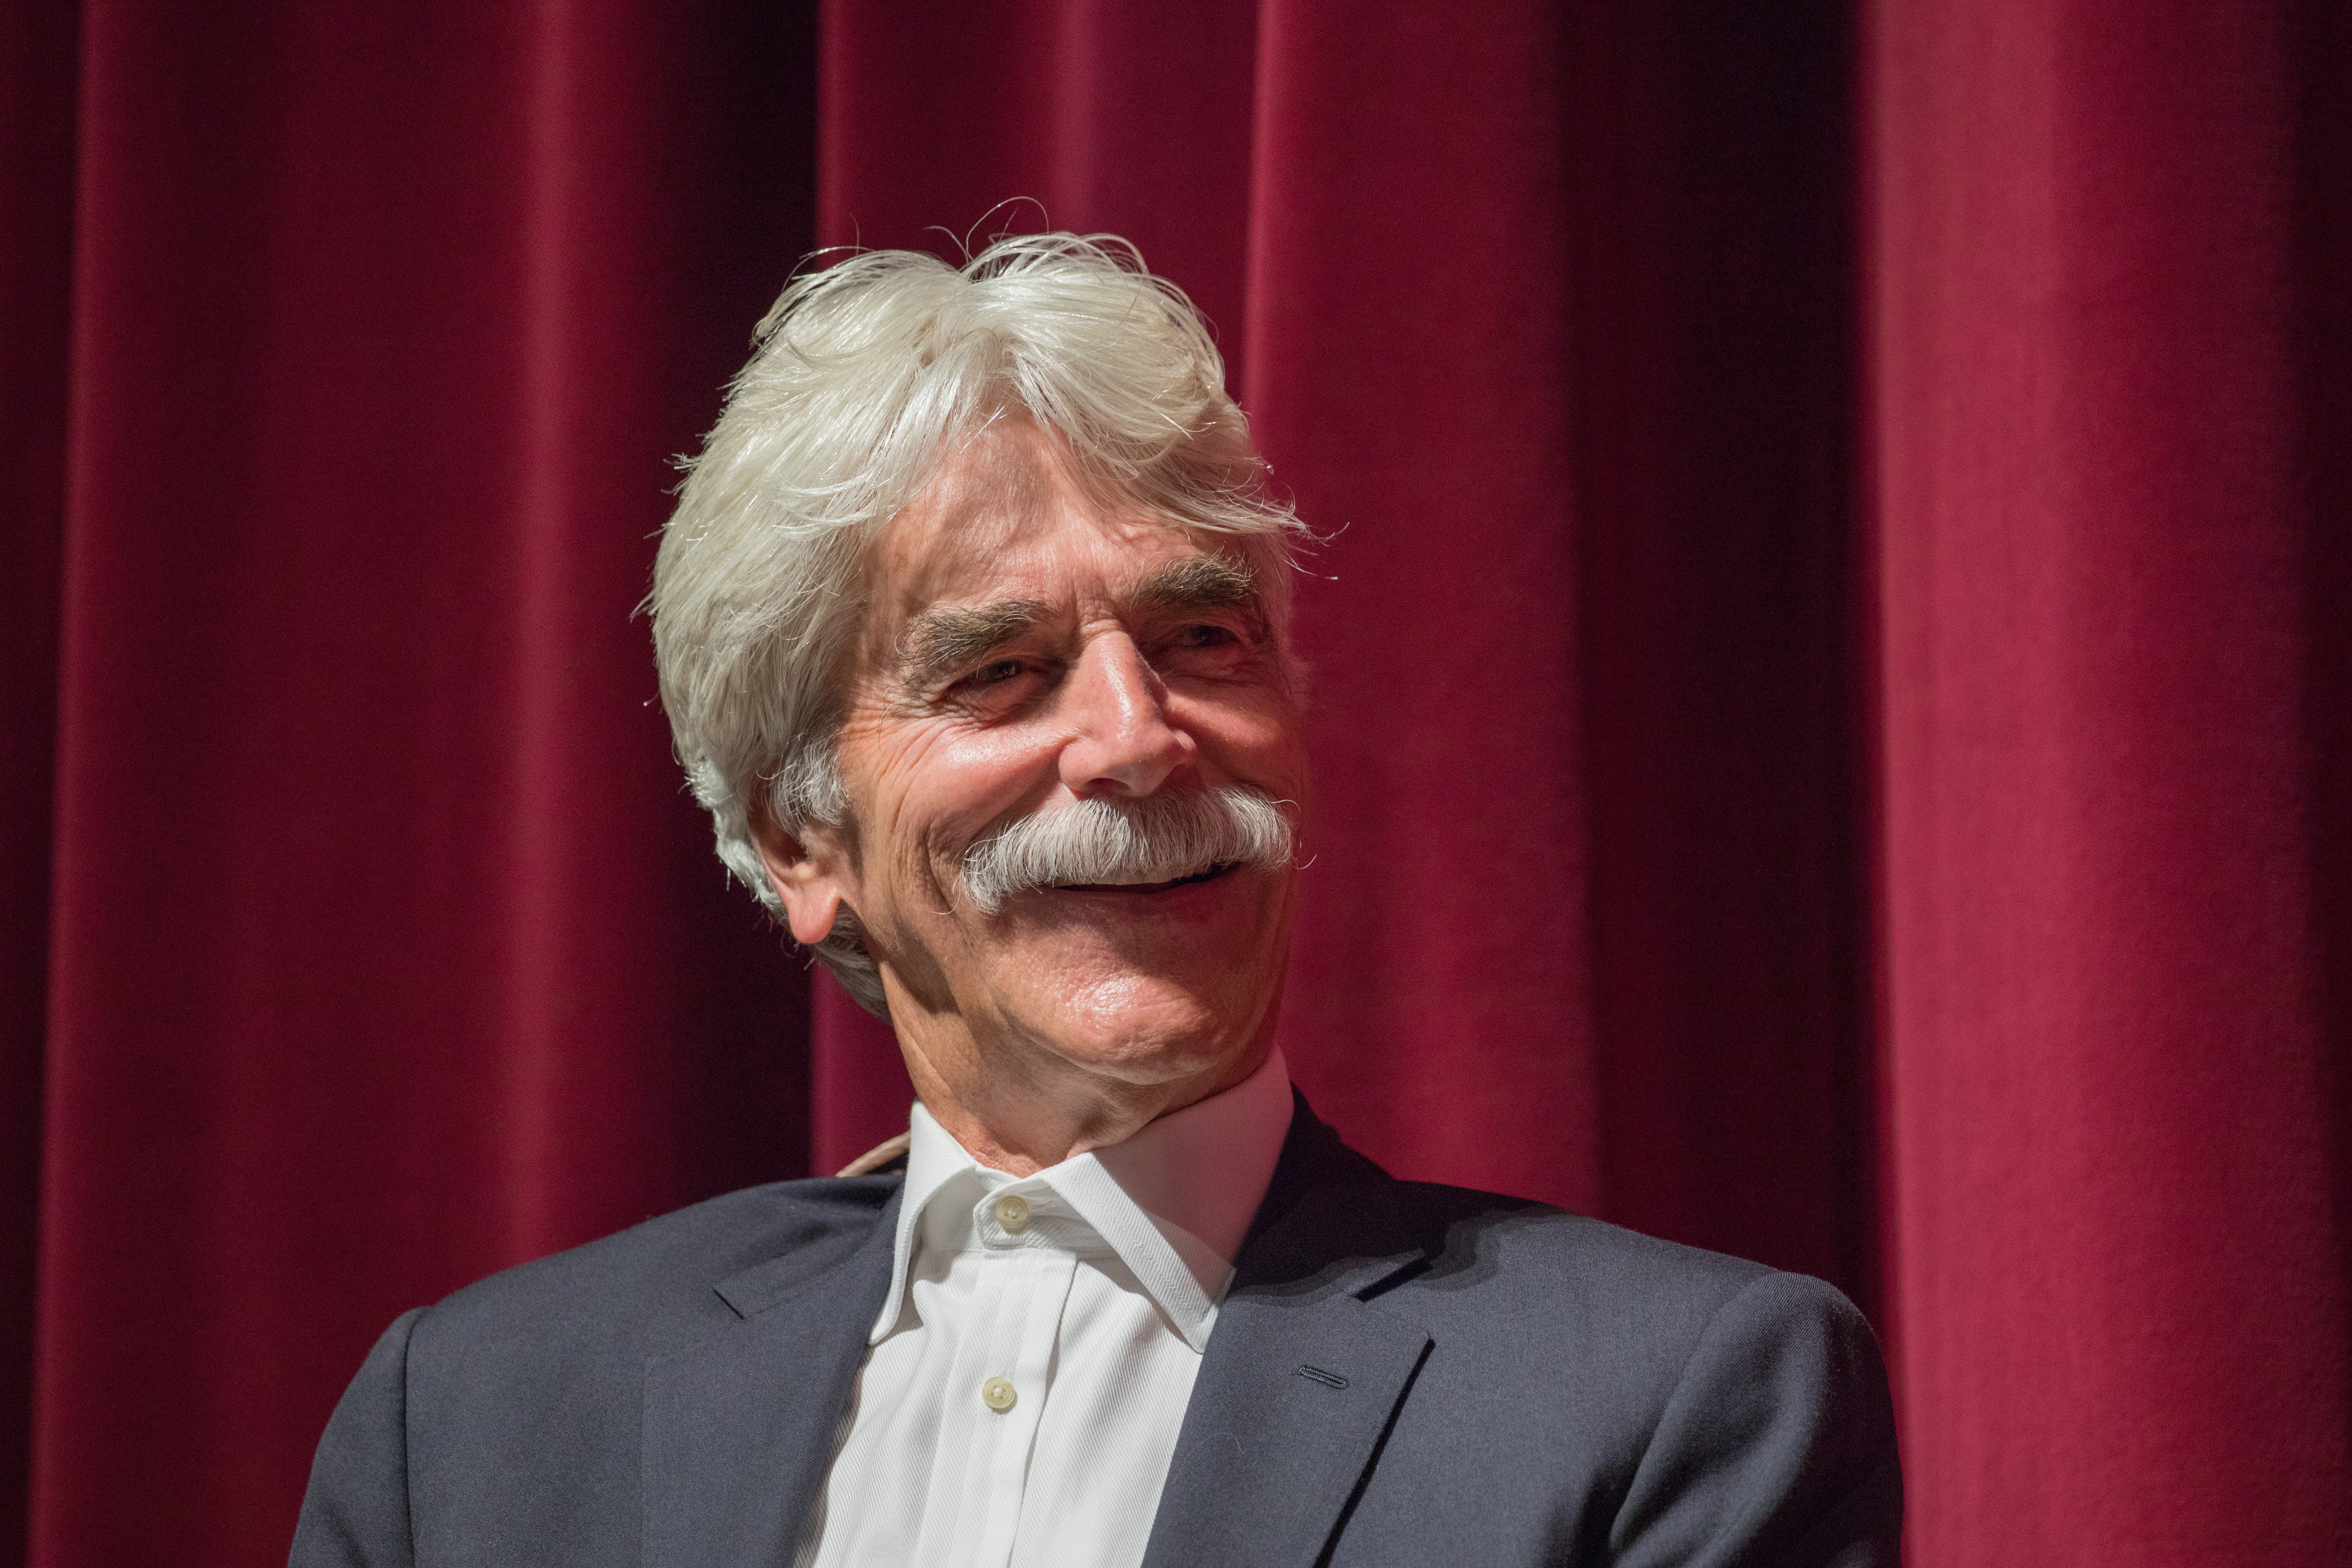 Sam Elliott at the 2019 Plaza Classic Film Festival on August 02, 2019 | Photo: GettyImages